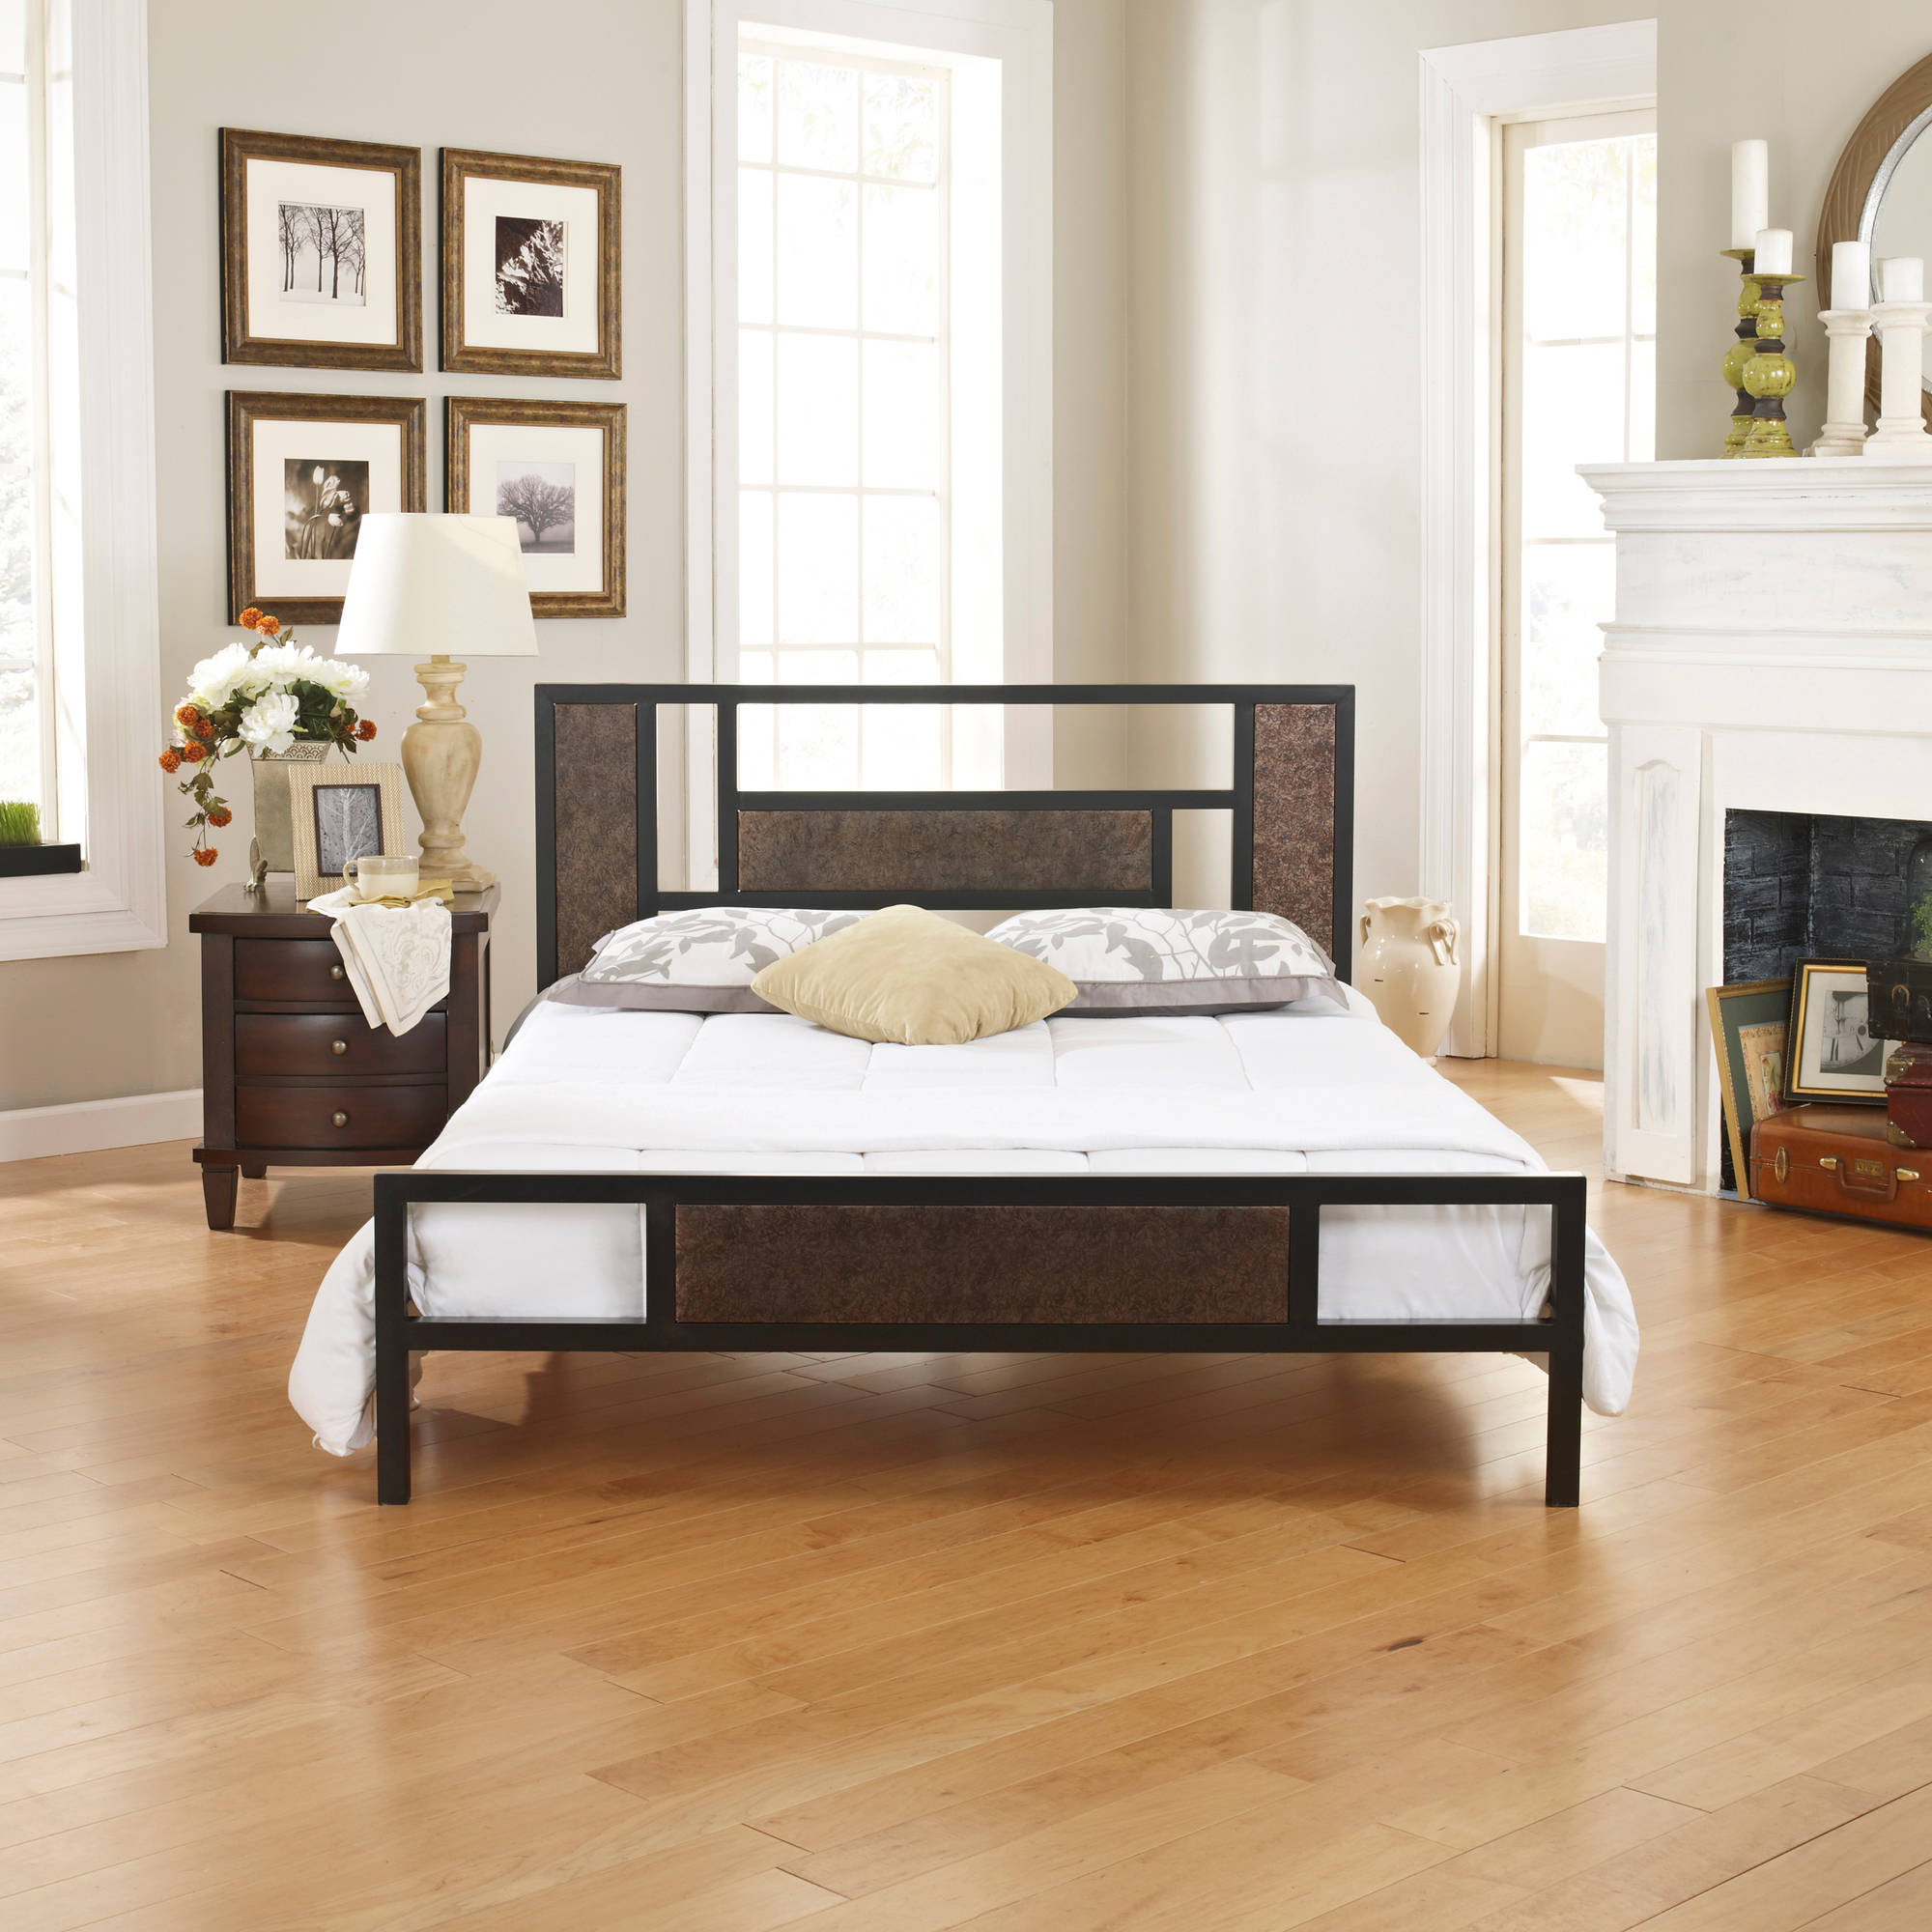 Premier Christa Metal Platform Base Bed Frame, Multiple Sizes